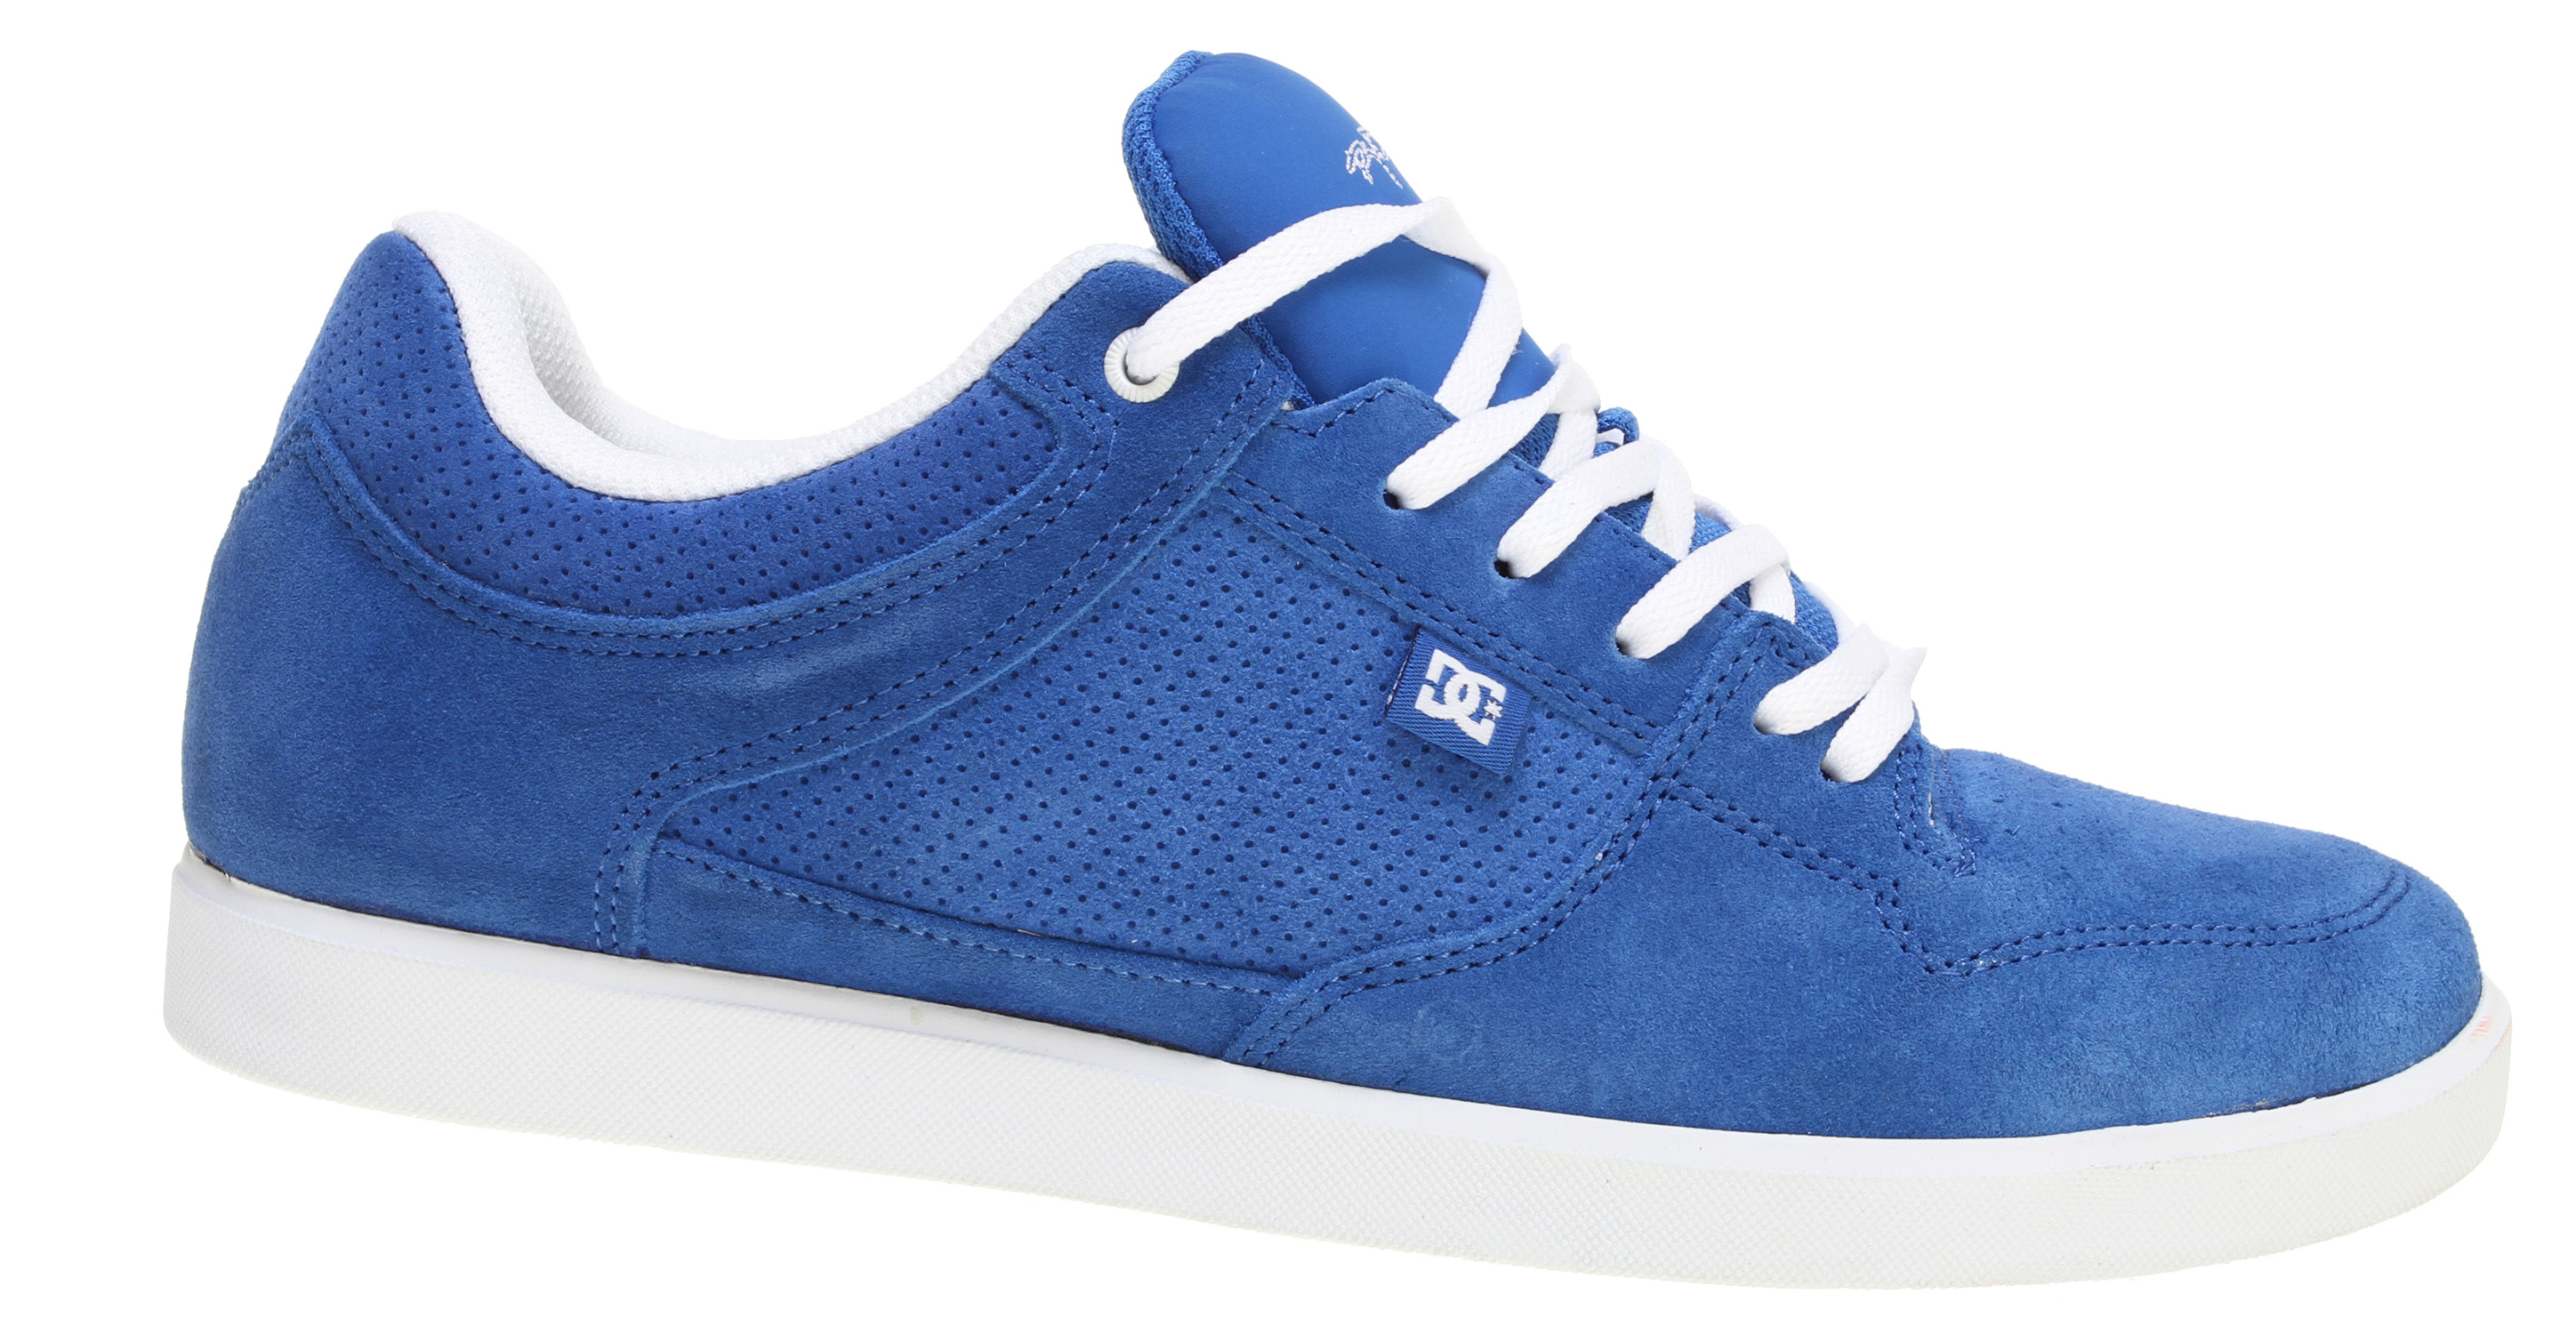 Skateboard Key Features of the DC Royal Low Skate Shoes: Heavy-duty suede upper Soft resilient action leather or action nubuck upper Perforated upper panel Metal eyelets and lace locks Foam-padded tongue and collar * Lightweight mesh tongue Spandex tongue holder Innovative DGT rubber bottom design for enhanced board control feel & durability Rubber toe wrap - $41.95